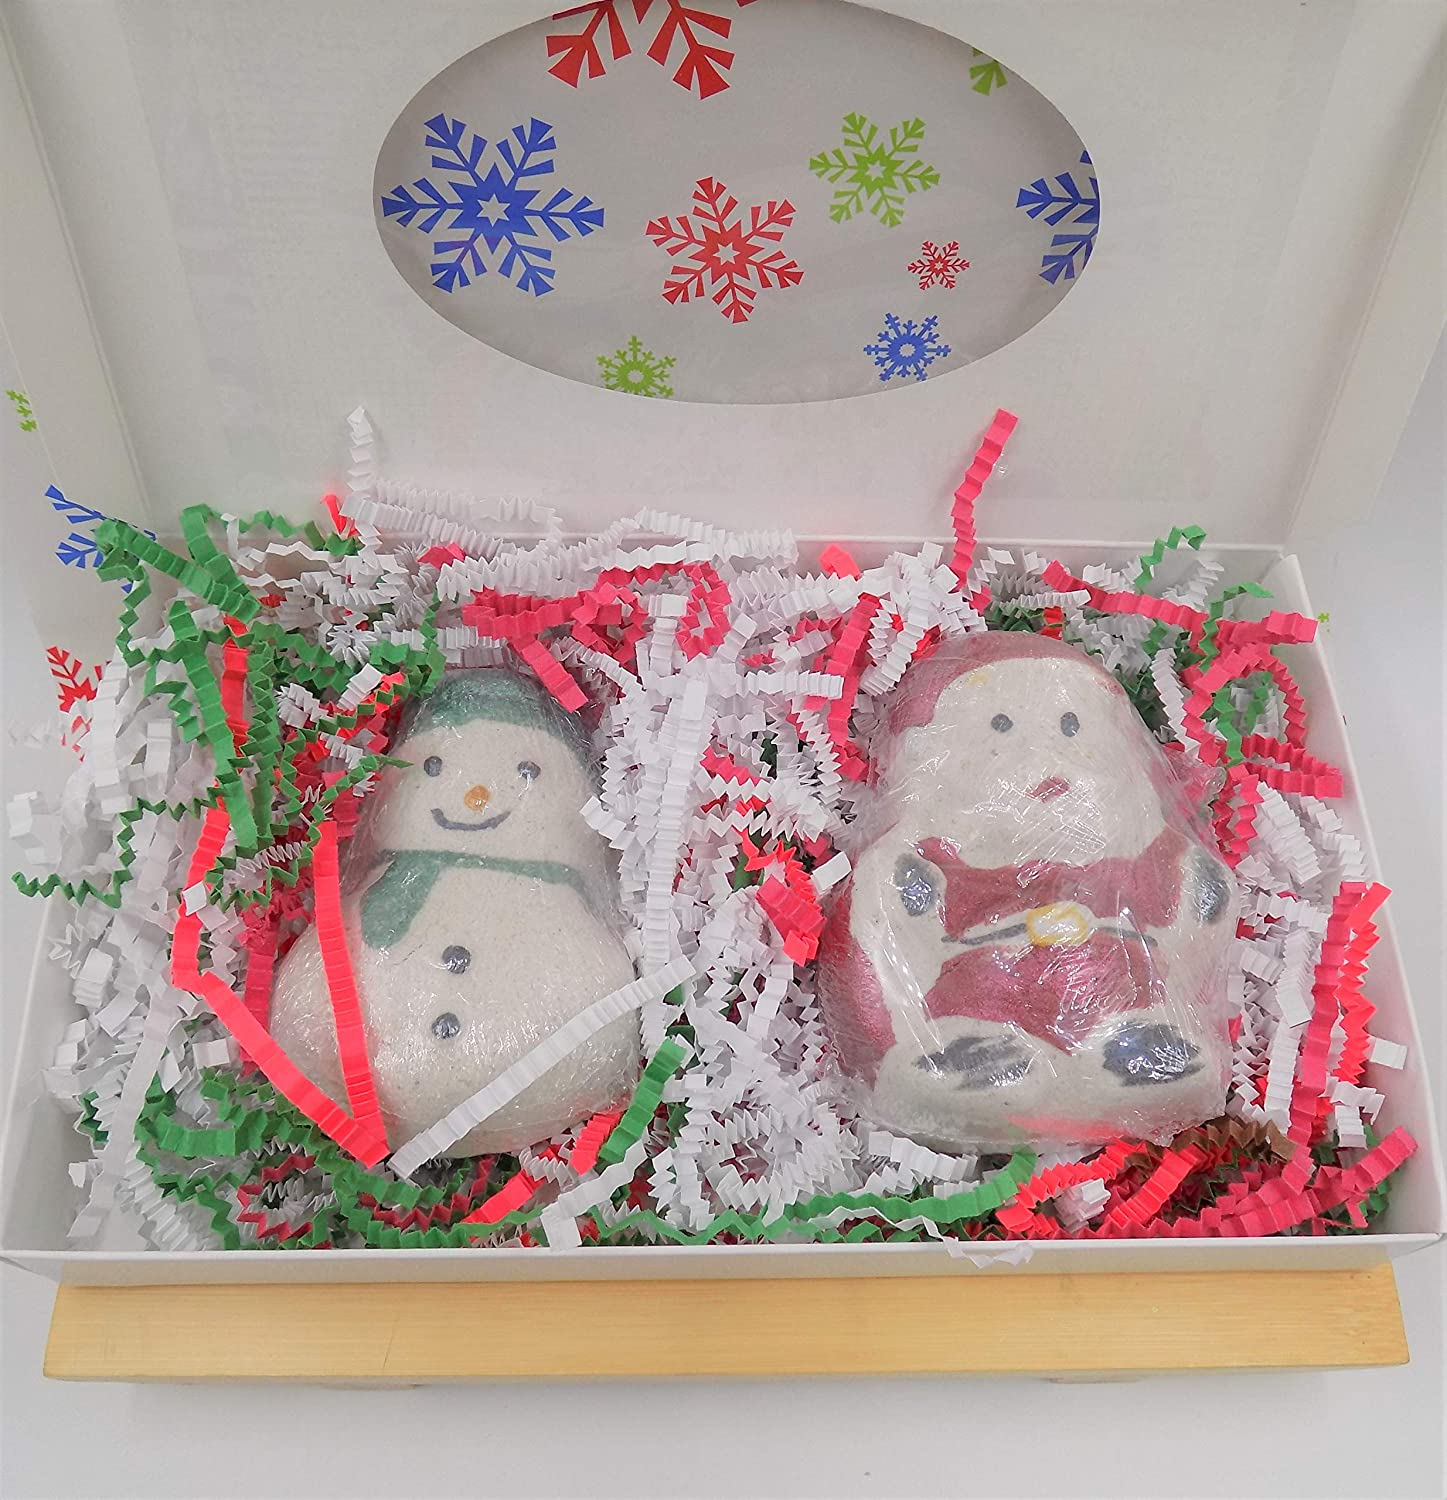 Santa Frosty Bath Bomb Gift Christmas Elf Set Sw Inventory New product! New type cleanup selling sale